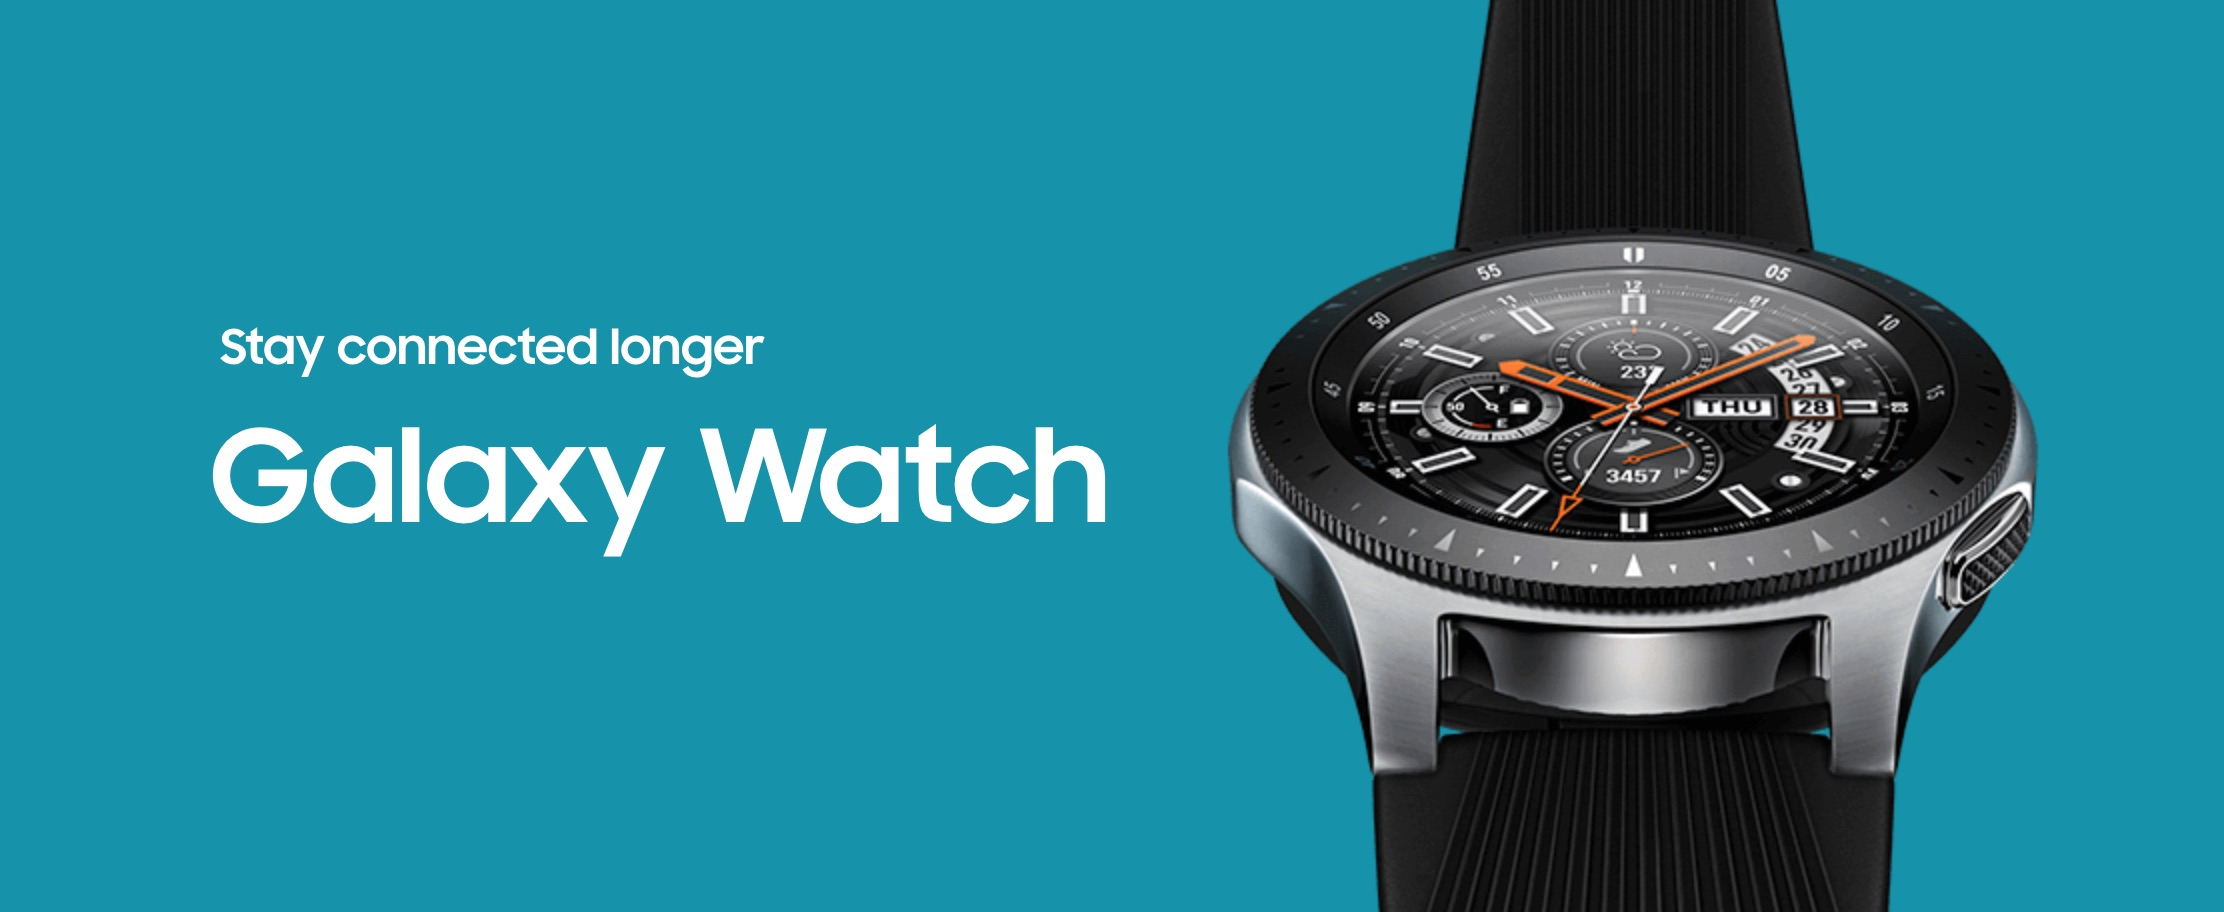 Smartwatch Shipments Increase By 49% In Q1 2019